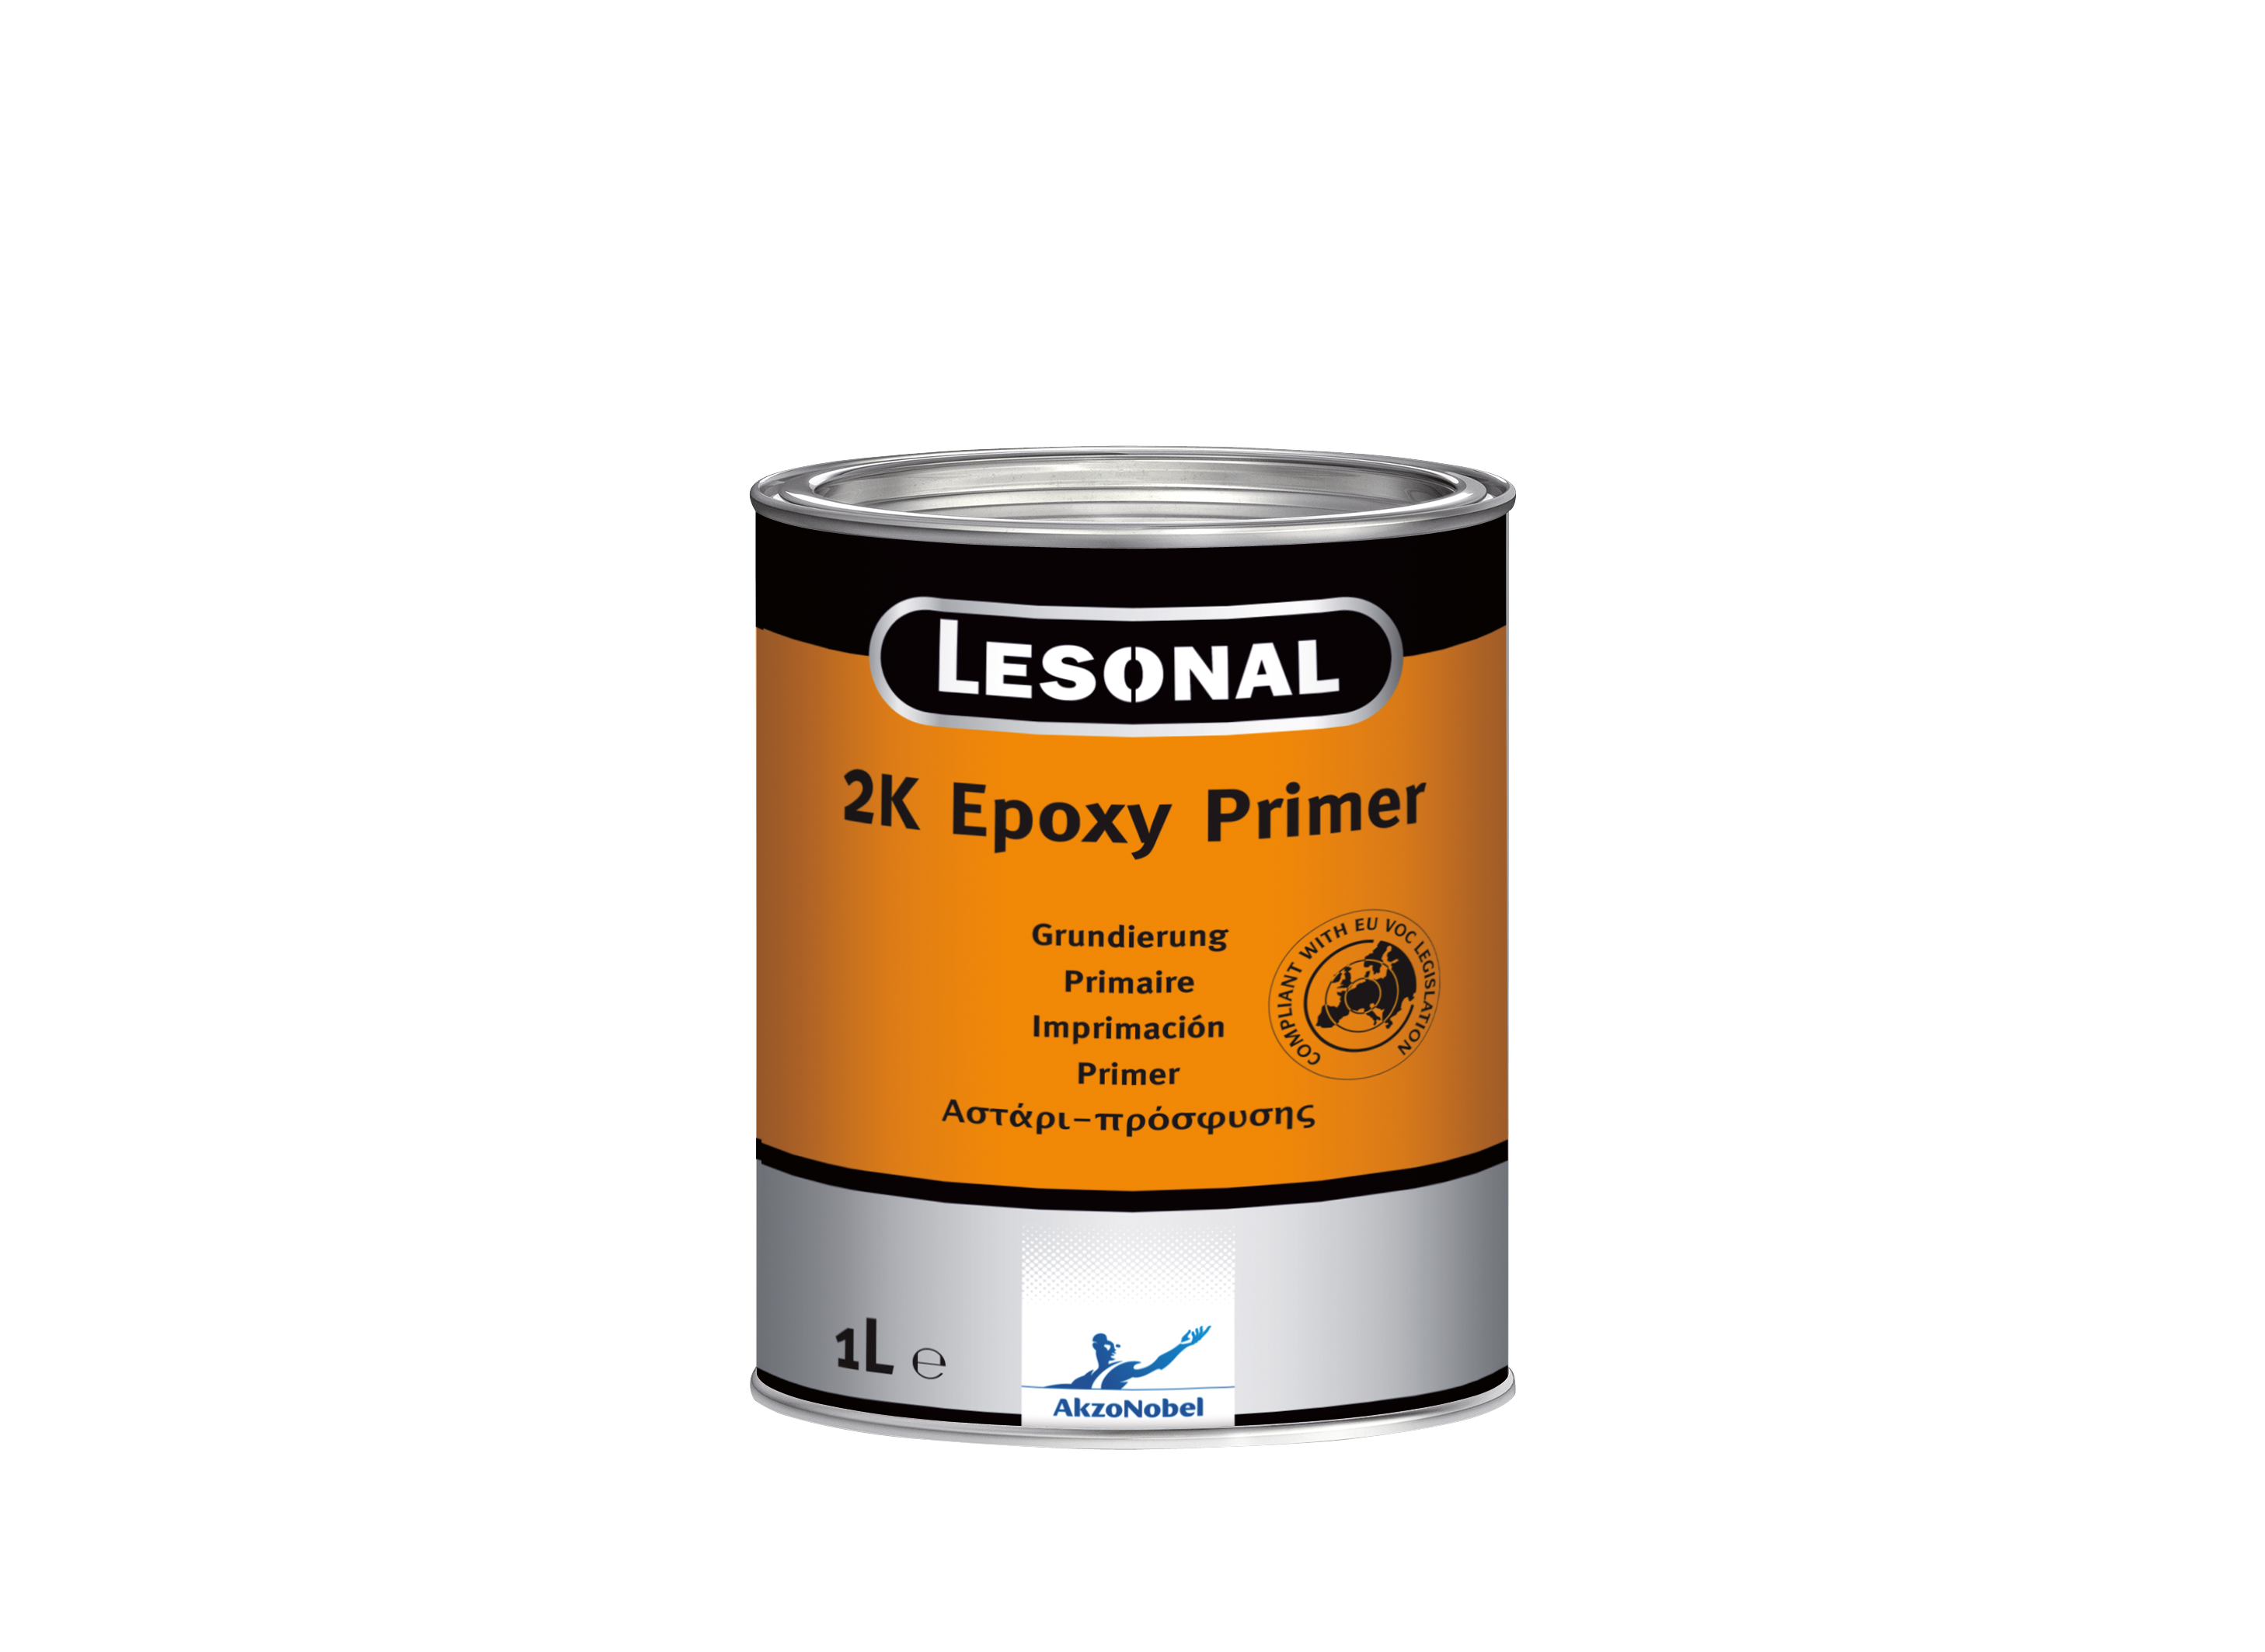 lesonal 2k epoxy primer 1 0 liter. Black Bedroom Furniture Sets. Home Design Ideas